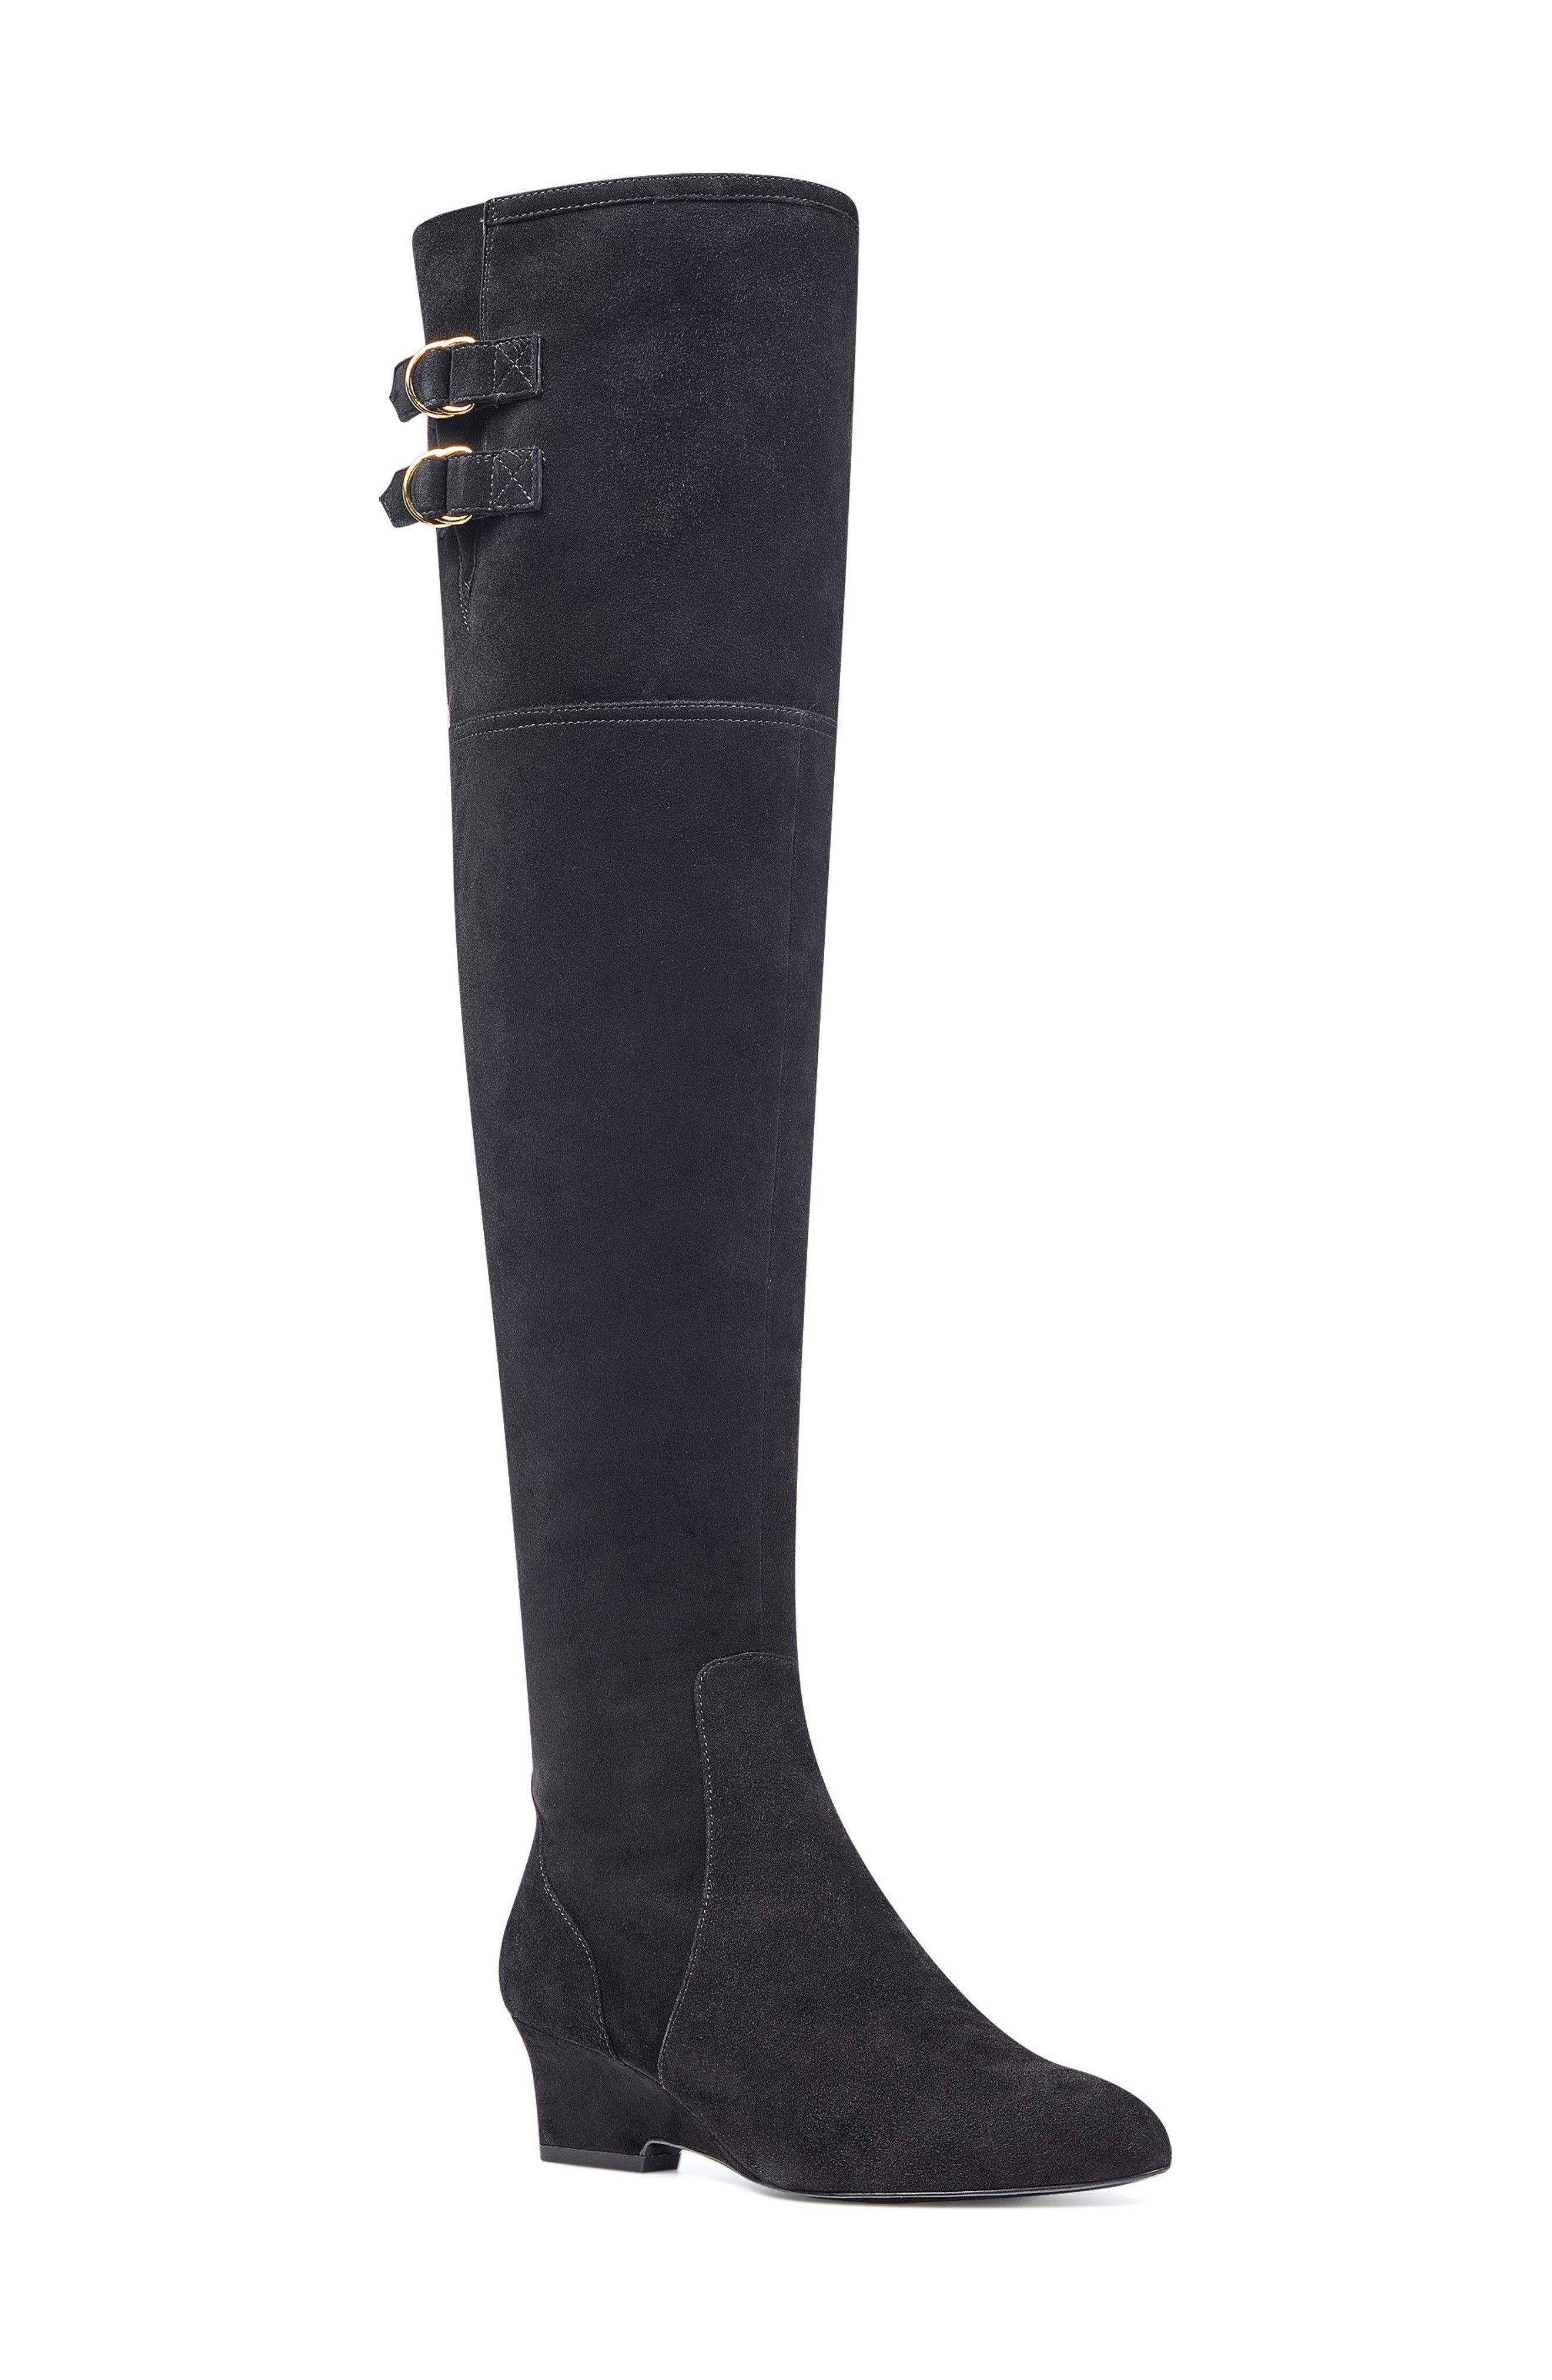 NINE WEST,                             Jaen Over the Knee Boot,                             Main thumbnail 1, color,                             001